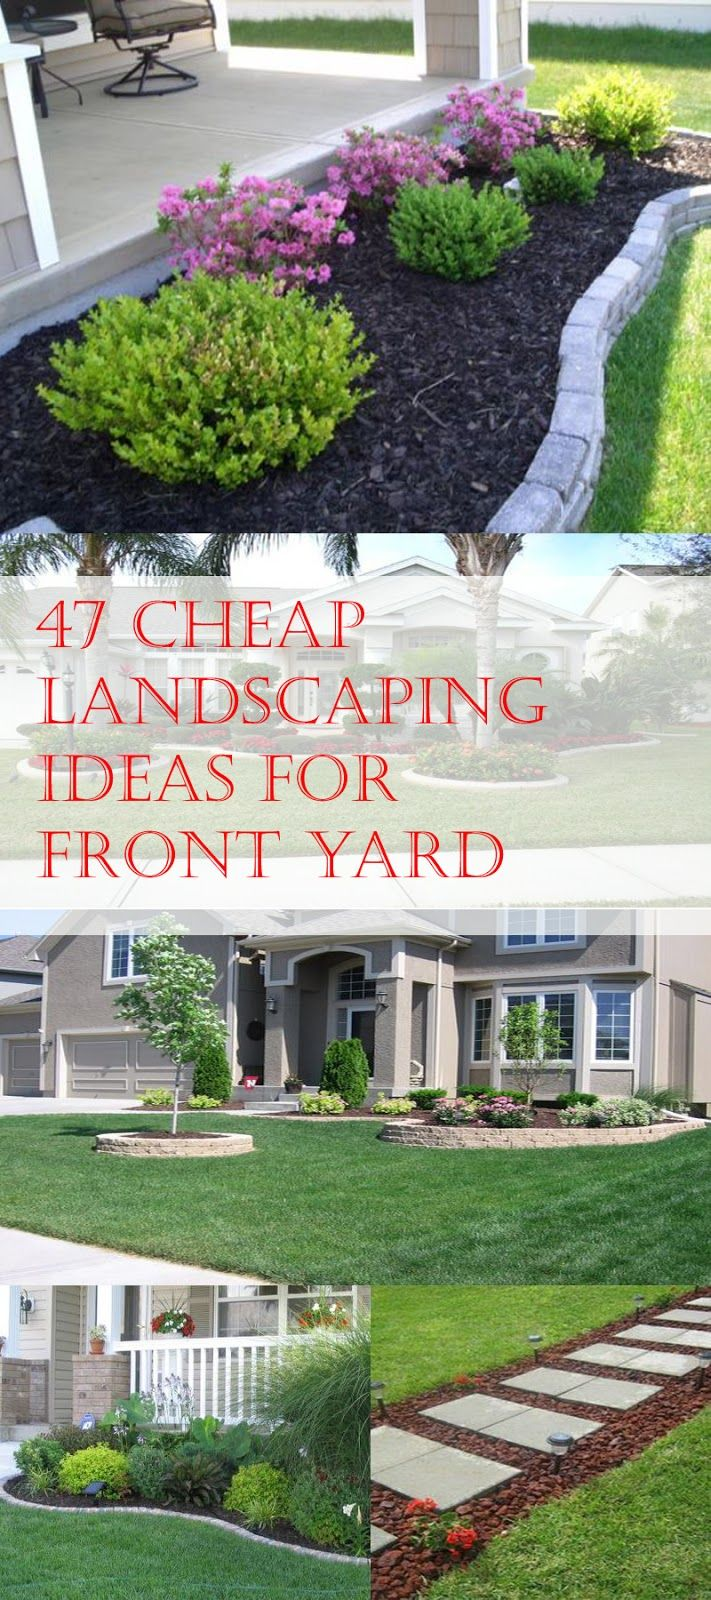 47 cheap landscaping ideas for front yard landscaping - Simple front yard landscaping ideas on a budget ...